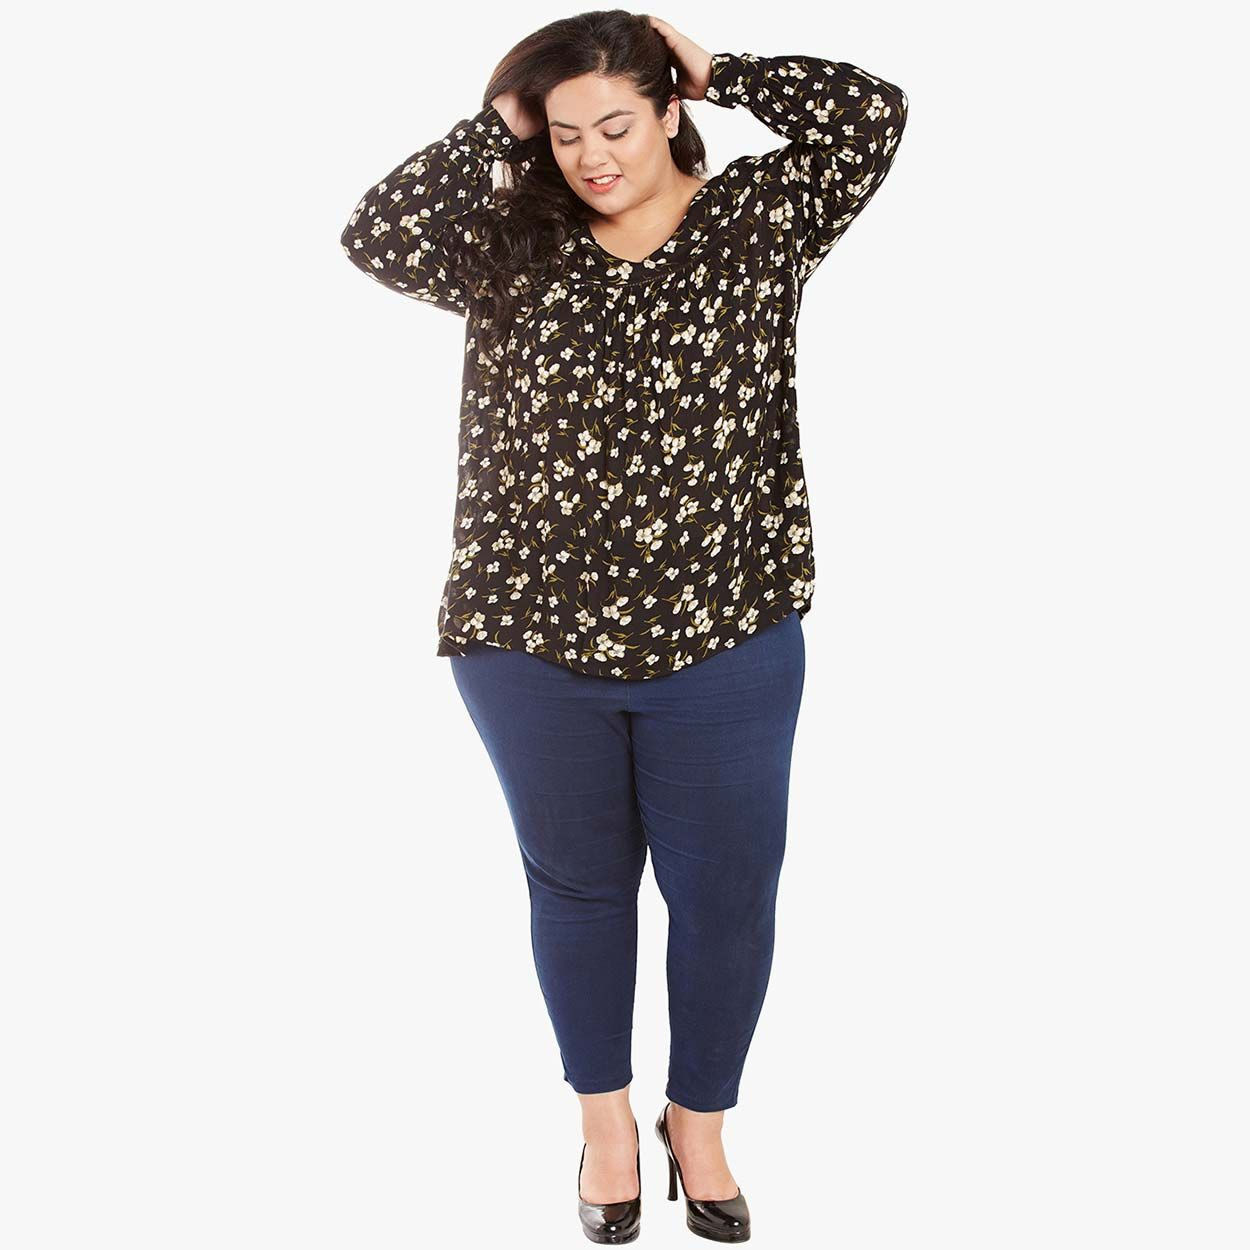 9b7f840b873 Buy Oxolloxo Plus Size Floral Printed Lace Details V Neck Top ...